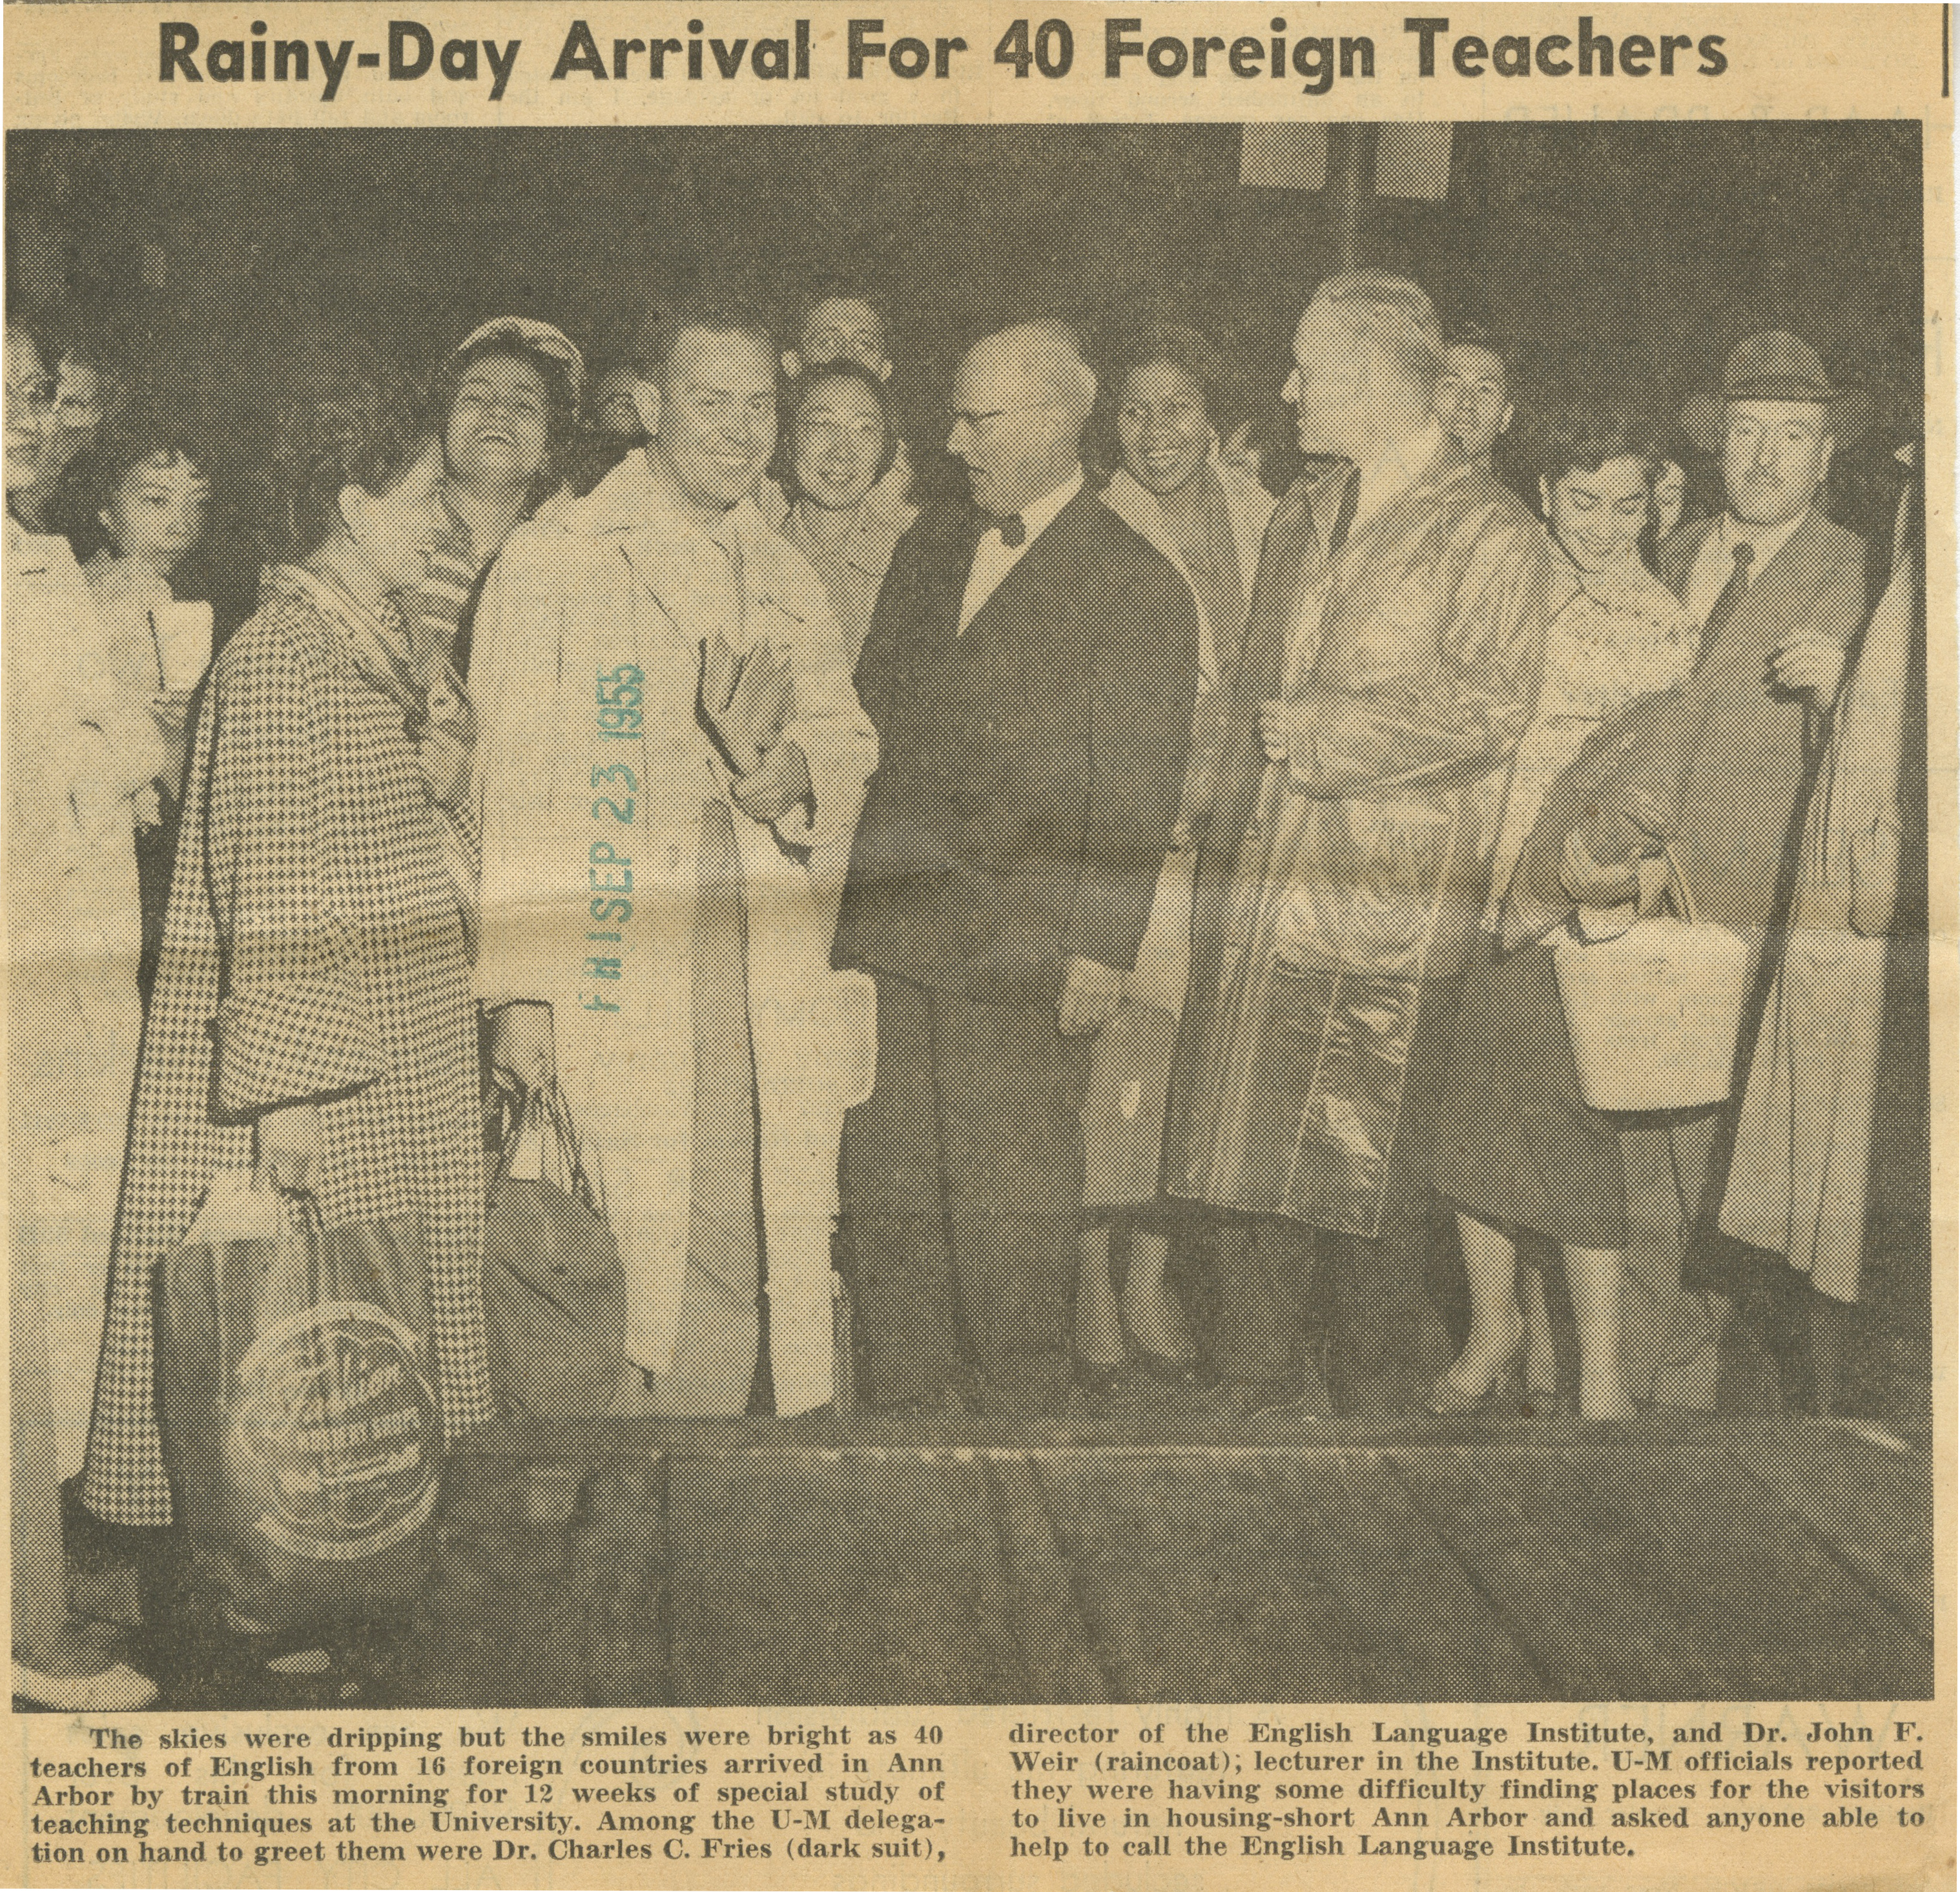 Rainy-Day Arrival For 40 Foreign Teachers image